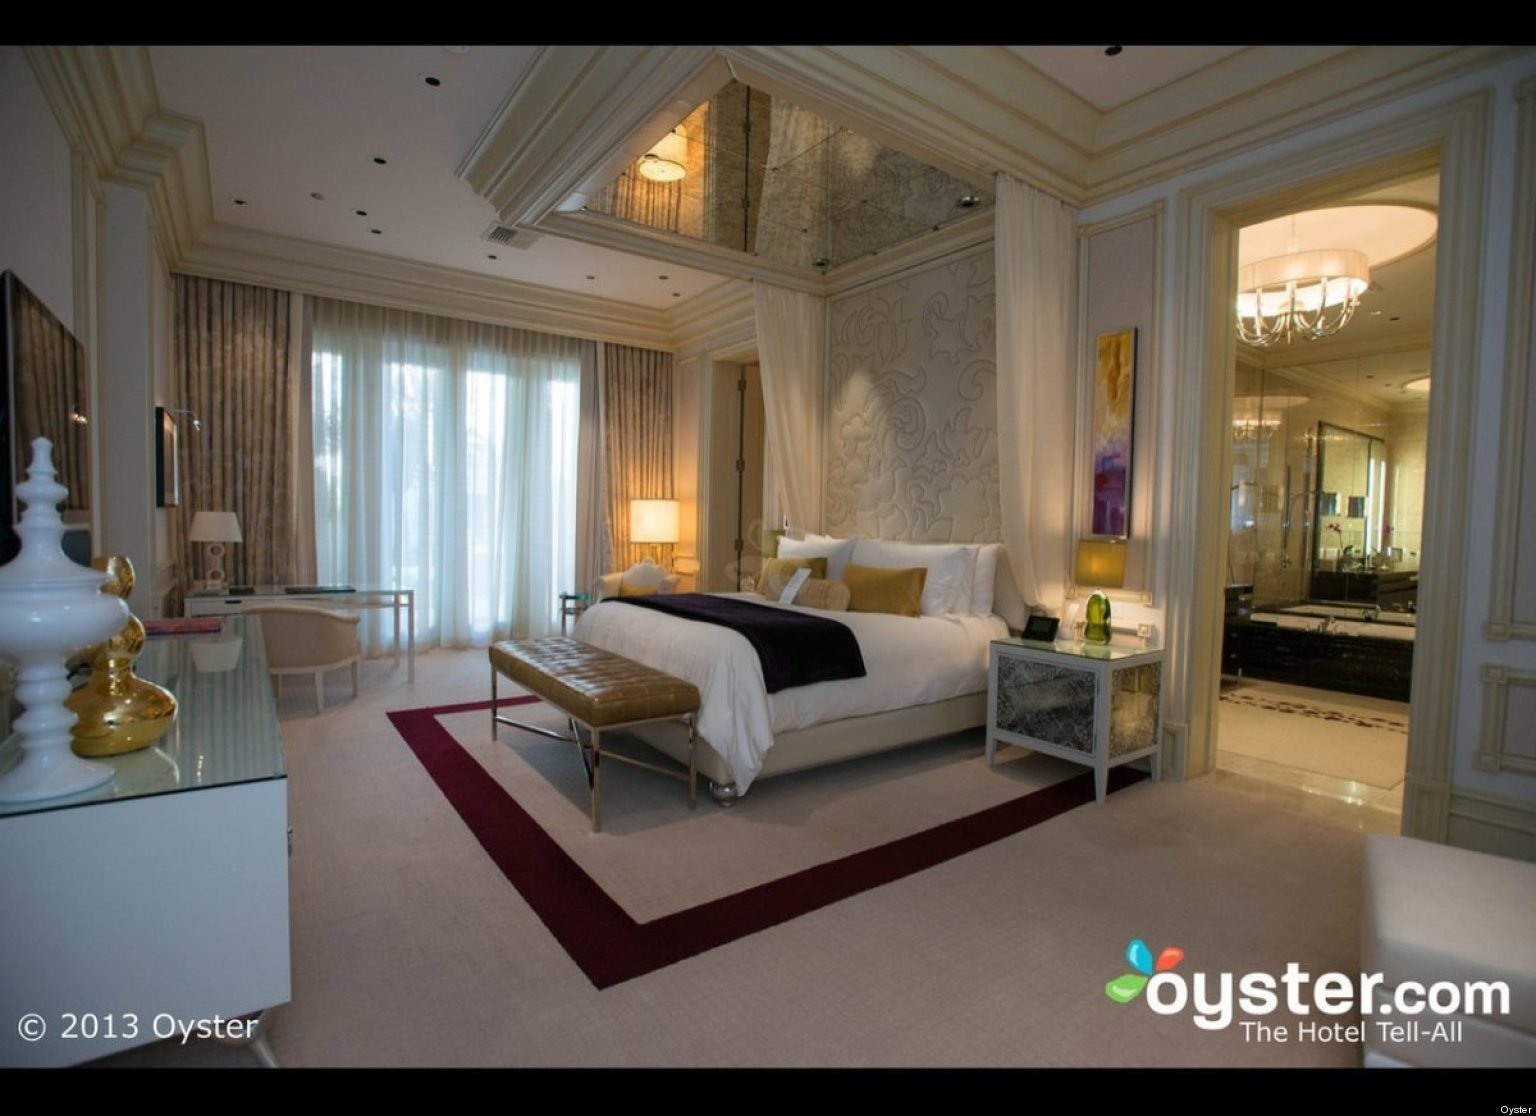 sticker shock: 12 crazy expensive hotel suites (photos) | huffpost